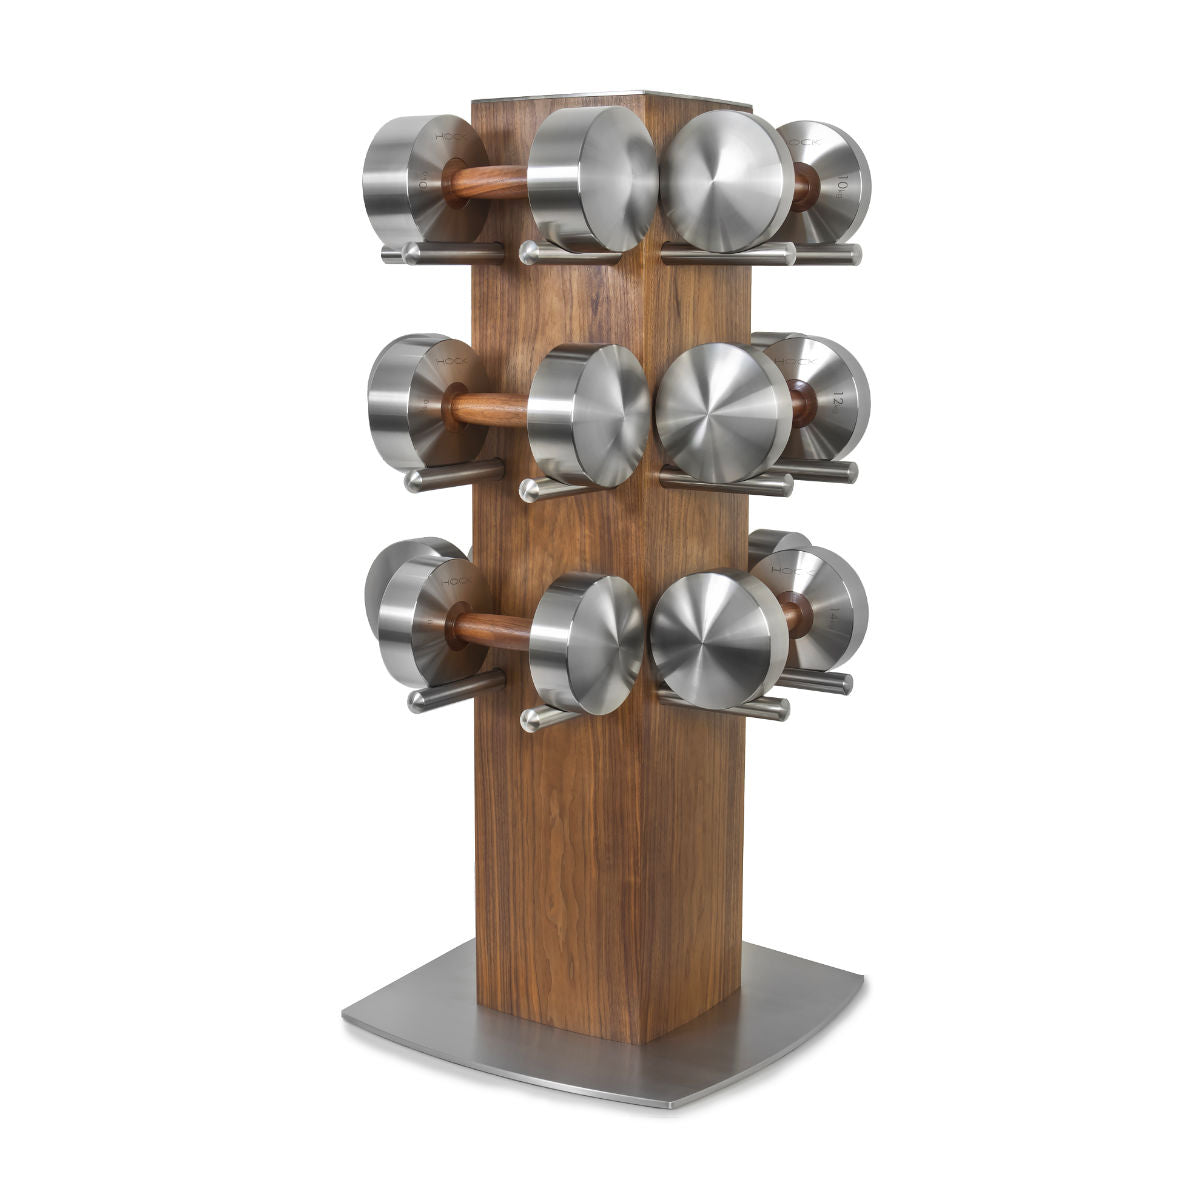 HOCK Design DISKUS SUPERTOWER luxury dumbells set, 10-20kg